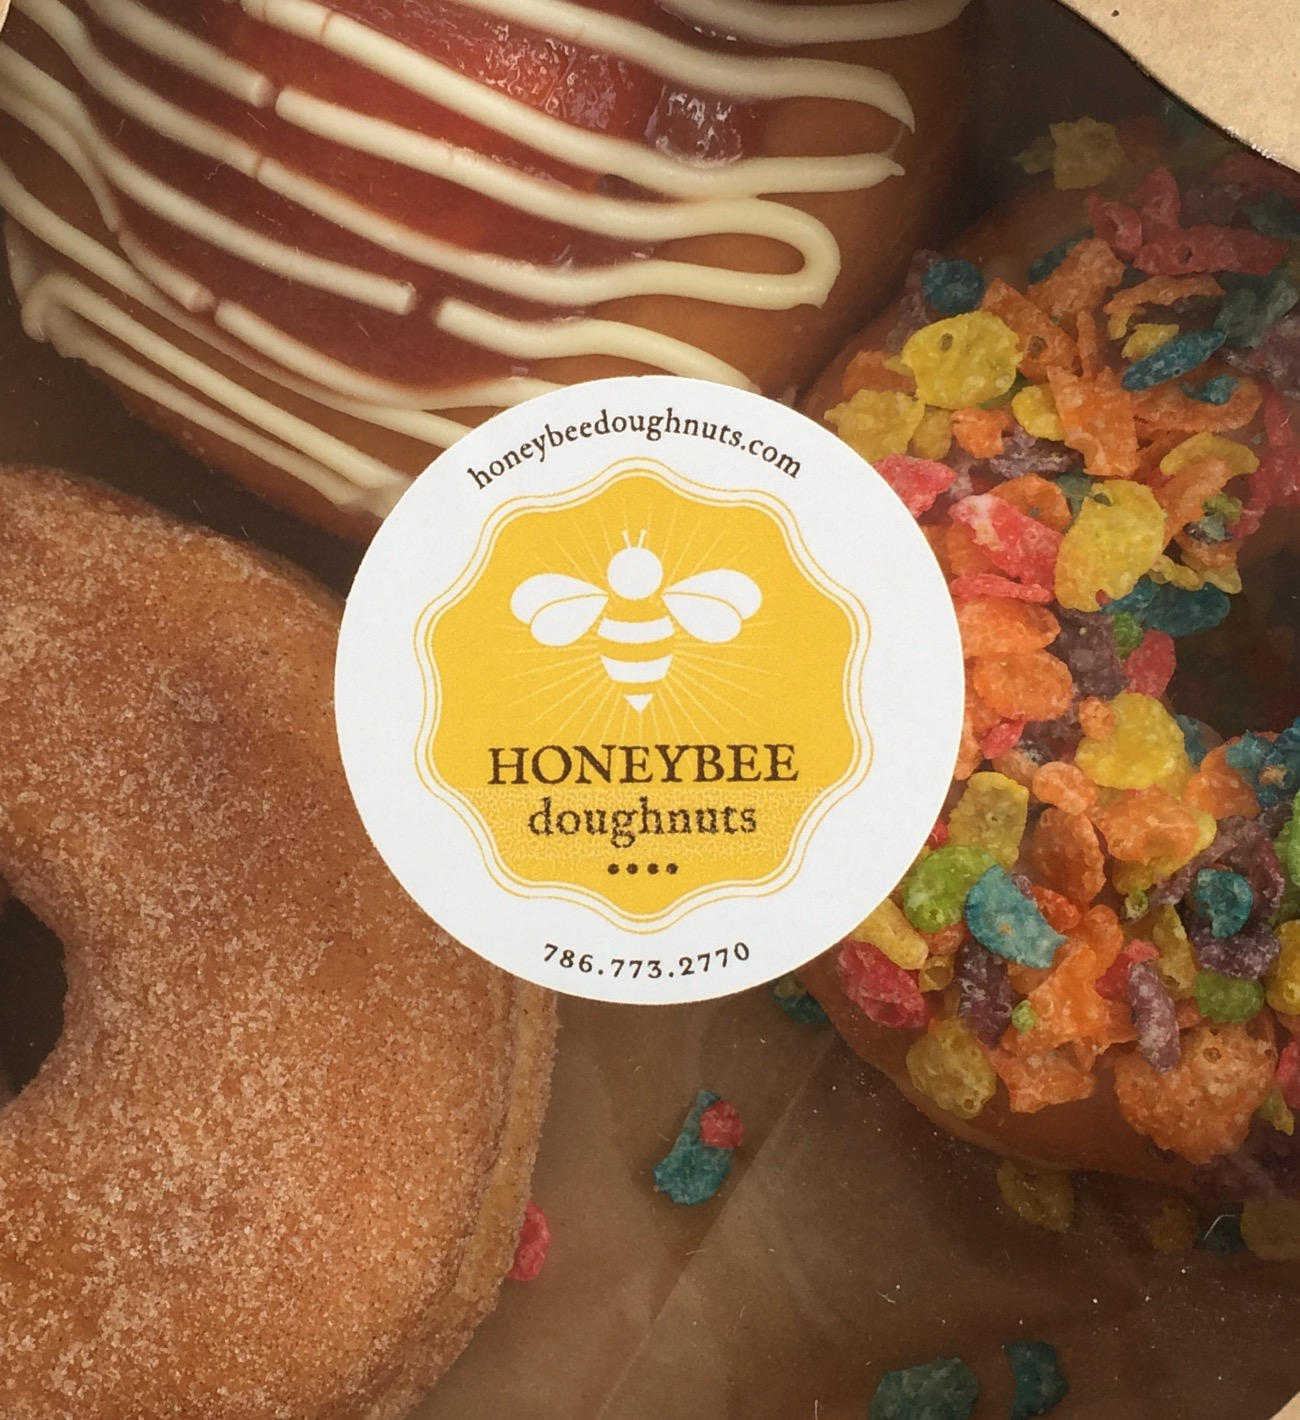 Honeybee Doughnuts is offering their take on the classic doughnut with unique flavors.